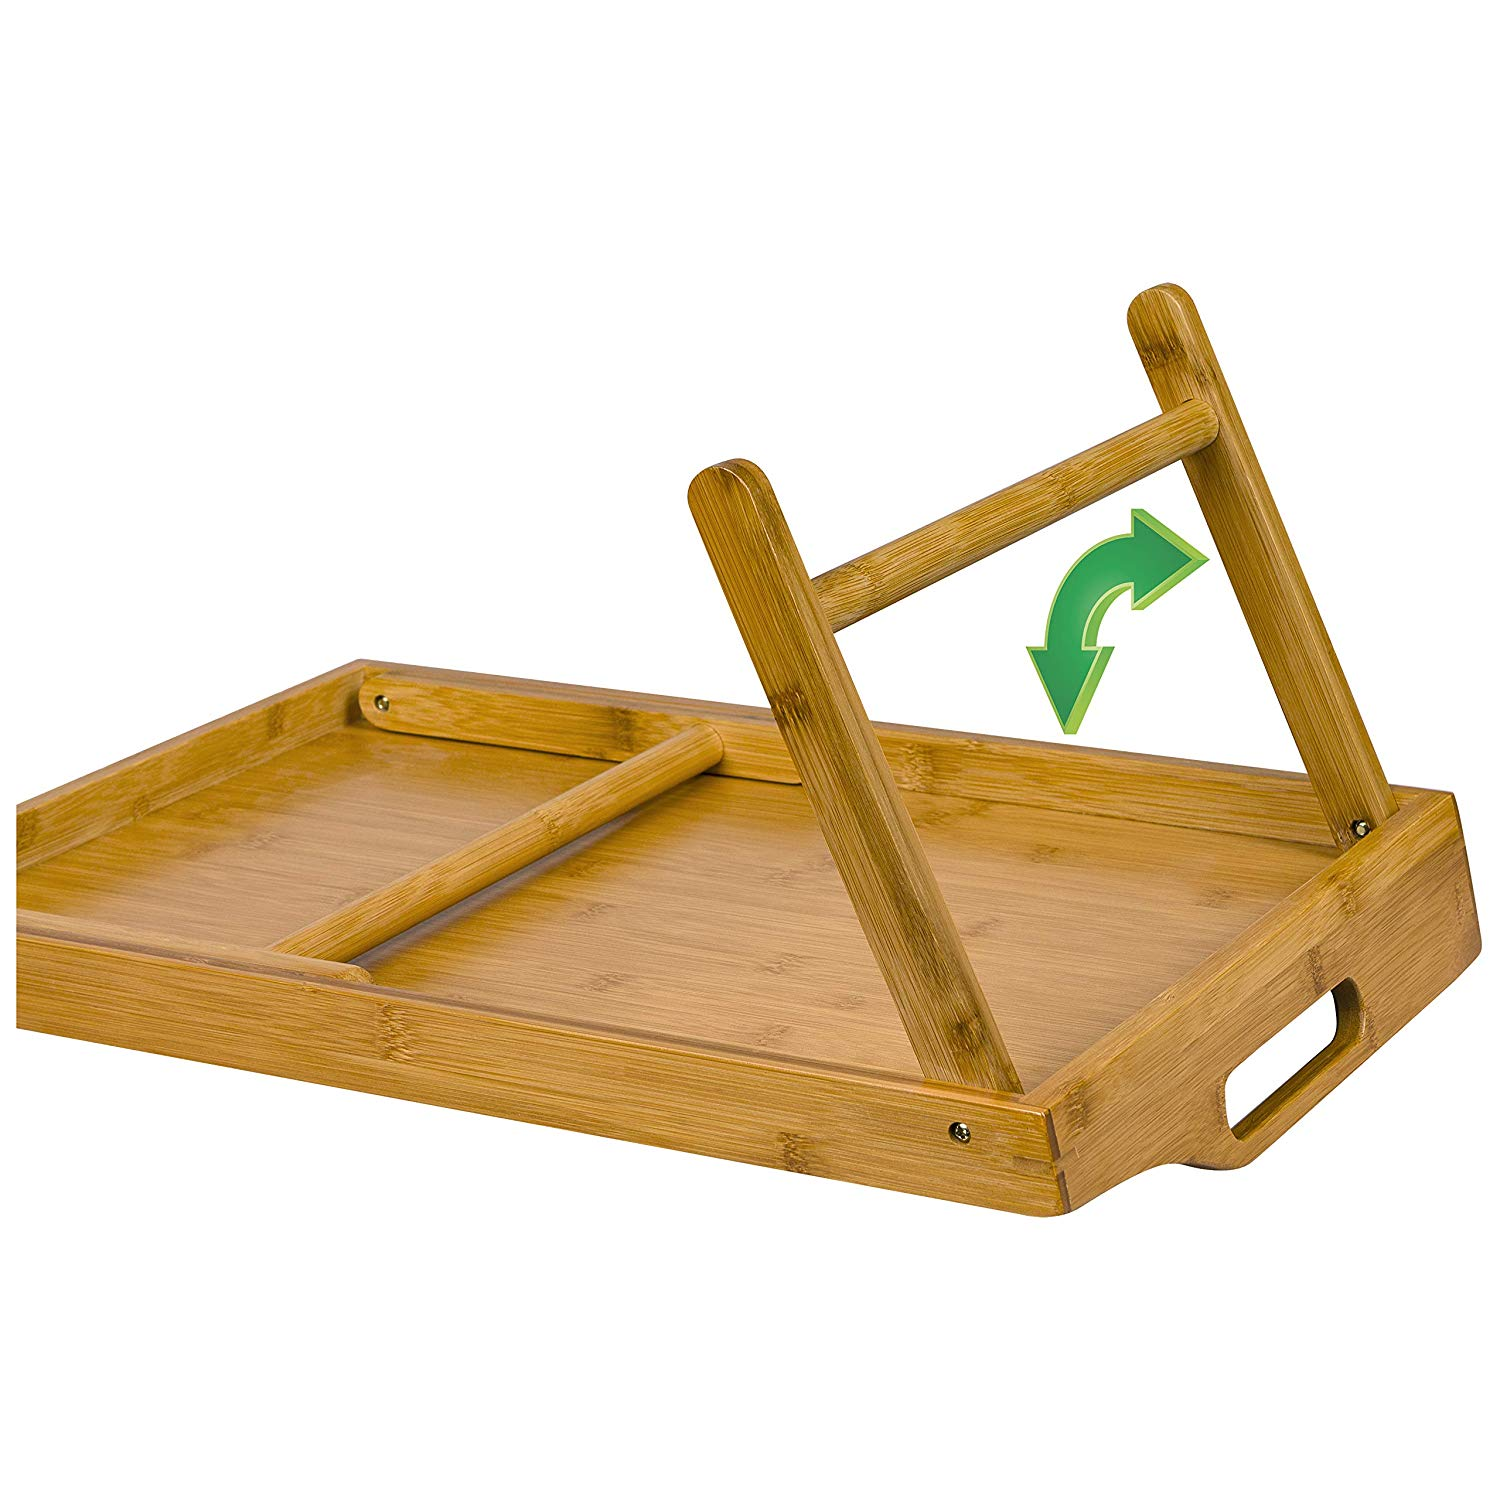 Natural Bamboo Serving Tray Set Bed Tray Breakfast Table With Legs Bamboo Tray Serving 5